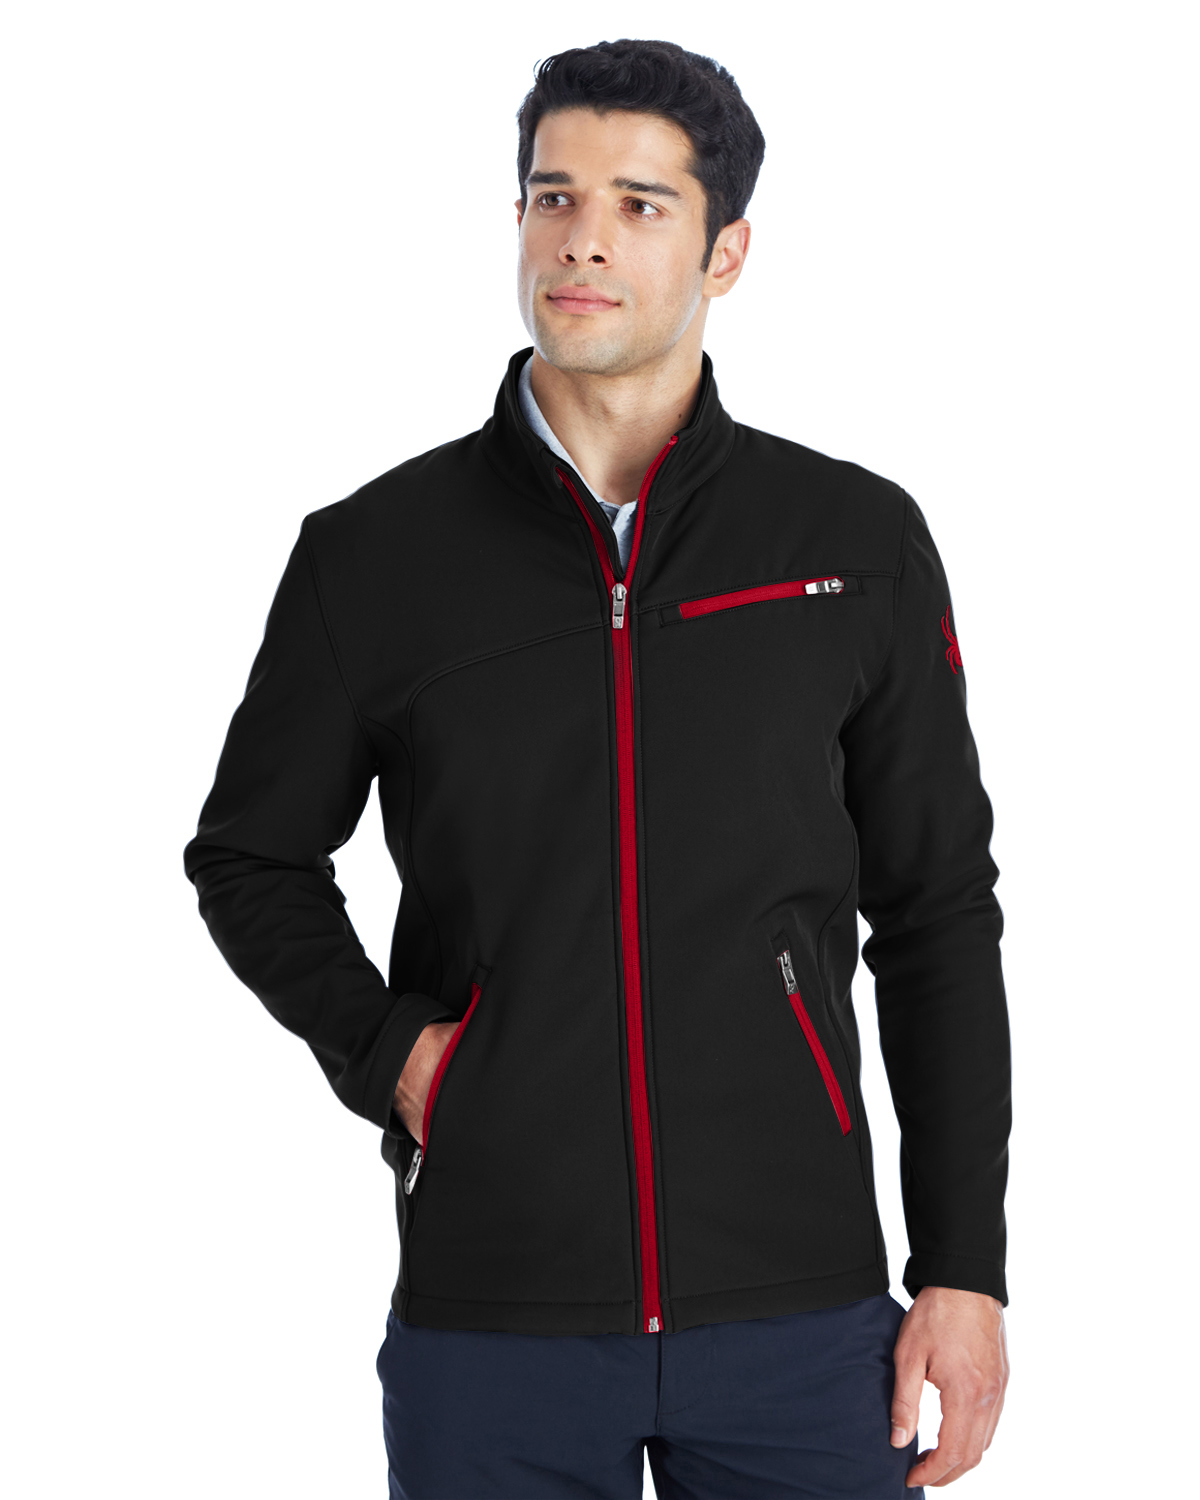 Spyder 187334 - Men's Transport Soft Shell Jacket